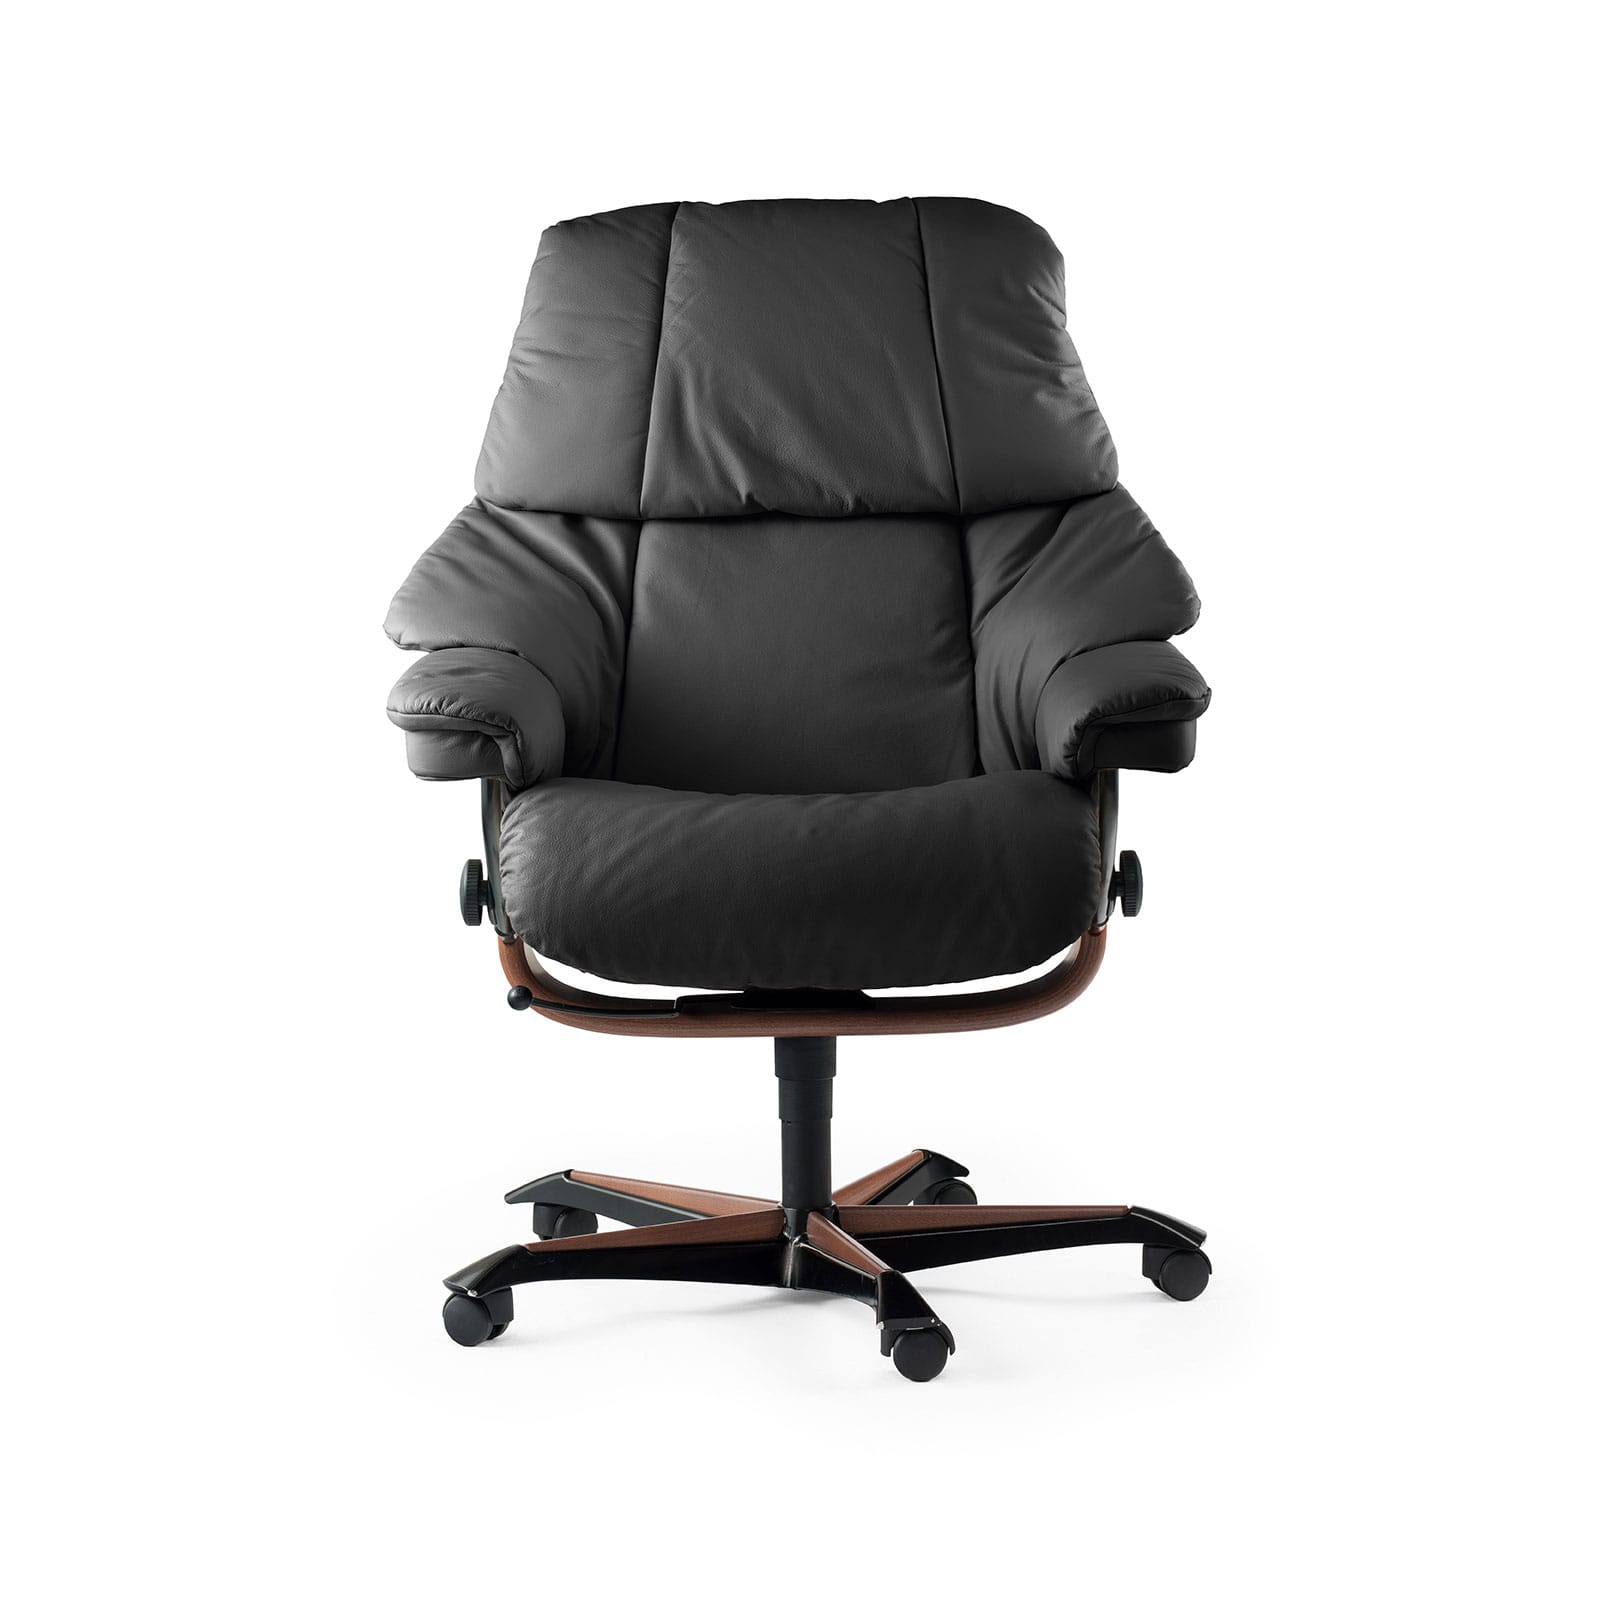 Stressless Bürostuhl Stressless Sessel Reno Home Office M Paloma Rock